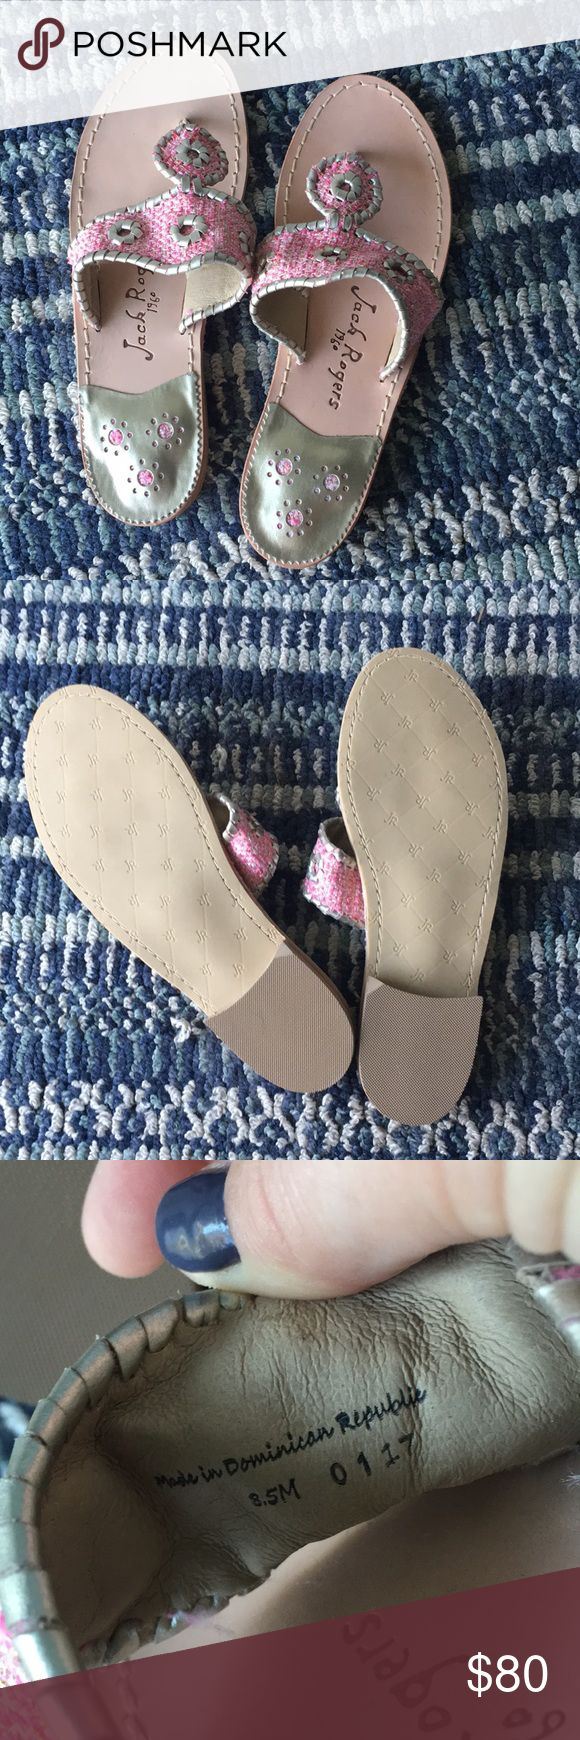 "Jack Rogers ""Palm Beach"" Sandal Super cute pink tweed and gold leather Jack Rogers classic palm beach sandal. These have never been worn outside of the house. (See photo of soles) They are size 8.5. Keep in mind that Jacks are made to be tighter originally because the leather stretches and fits to your foot over time. Jack Rogers Shoes Sandals"